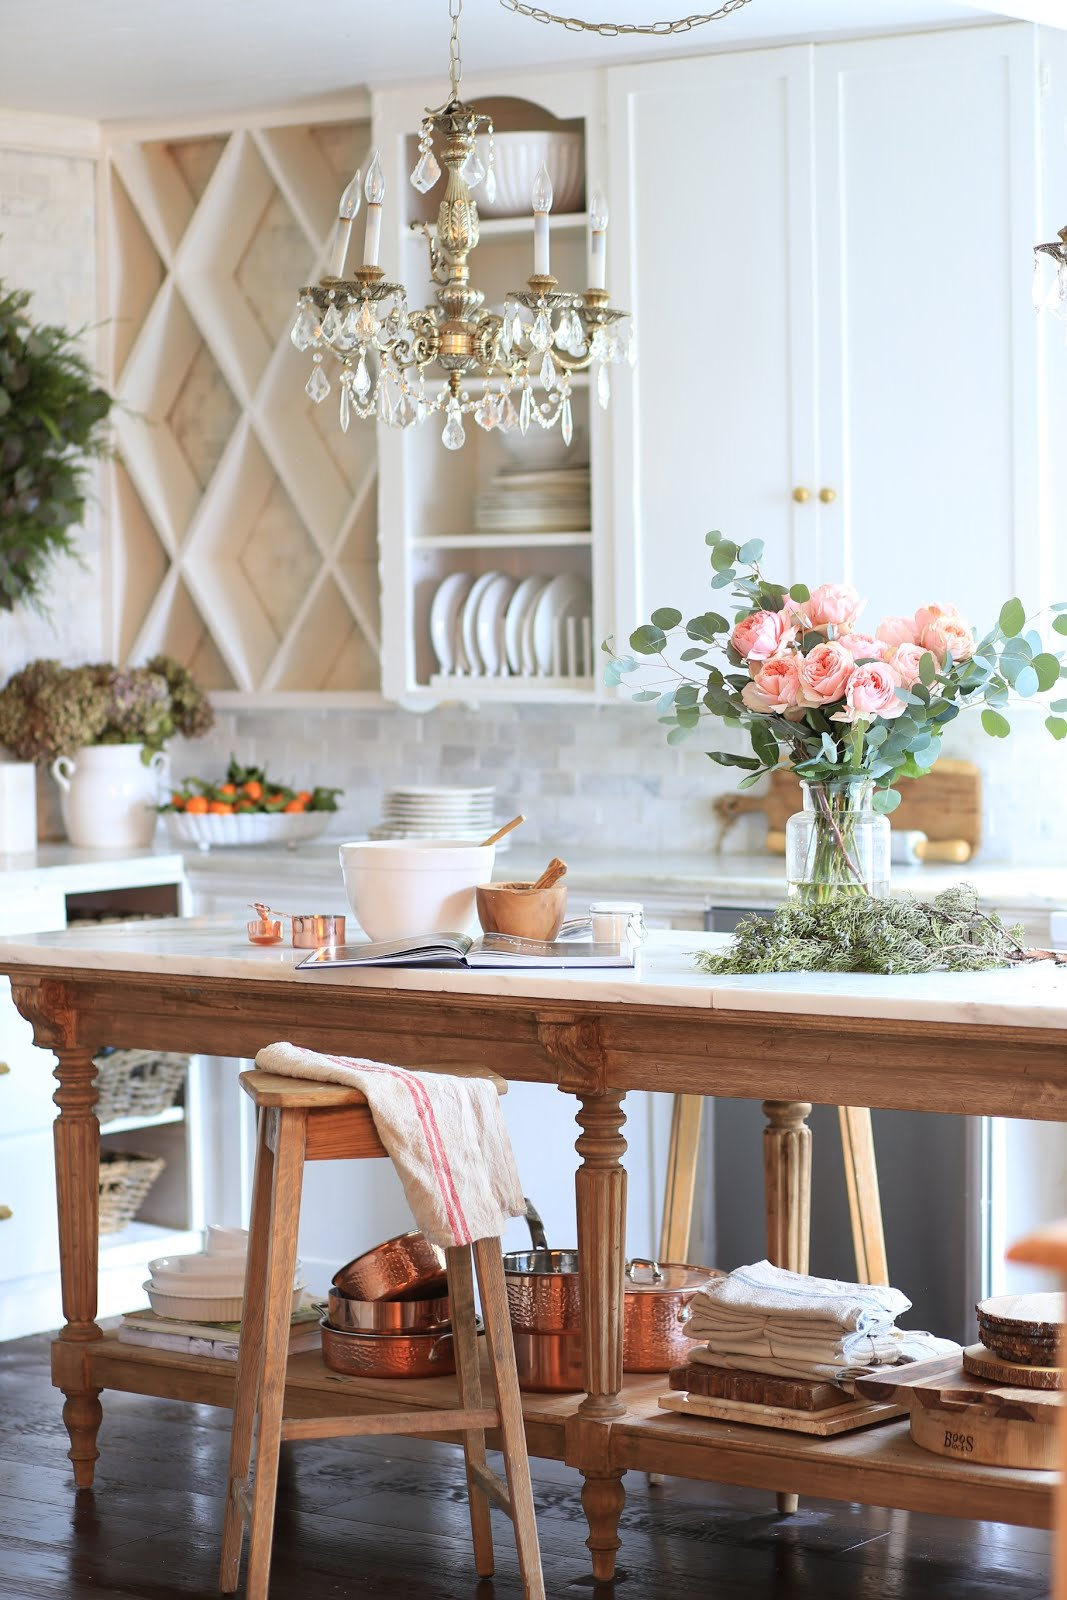 A charming vintage inspired kitchen island - FRENCH COUNTRY ...